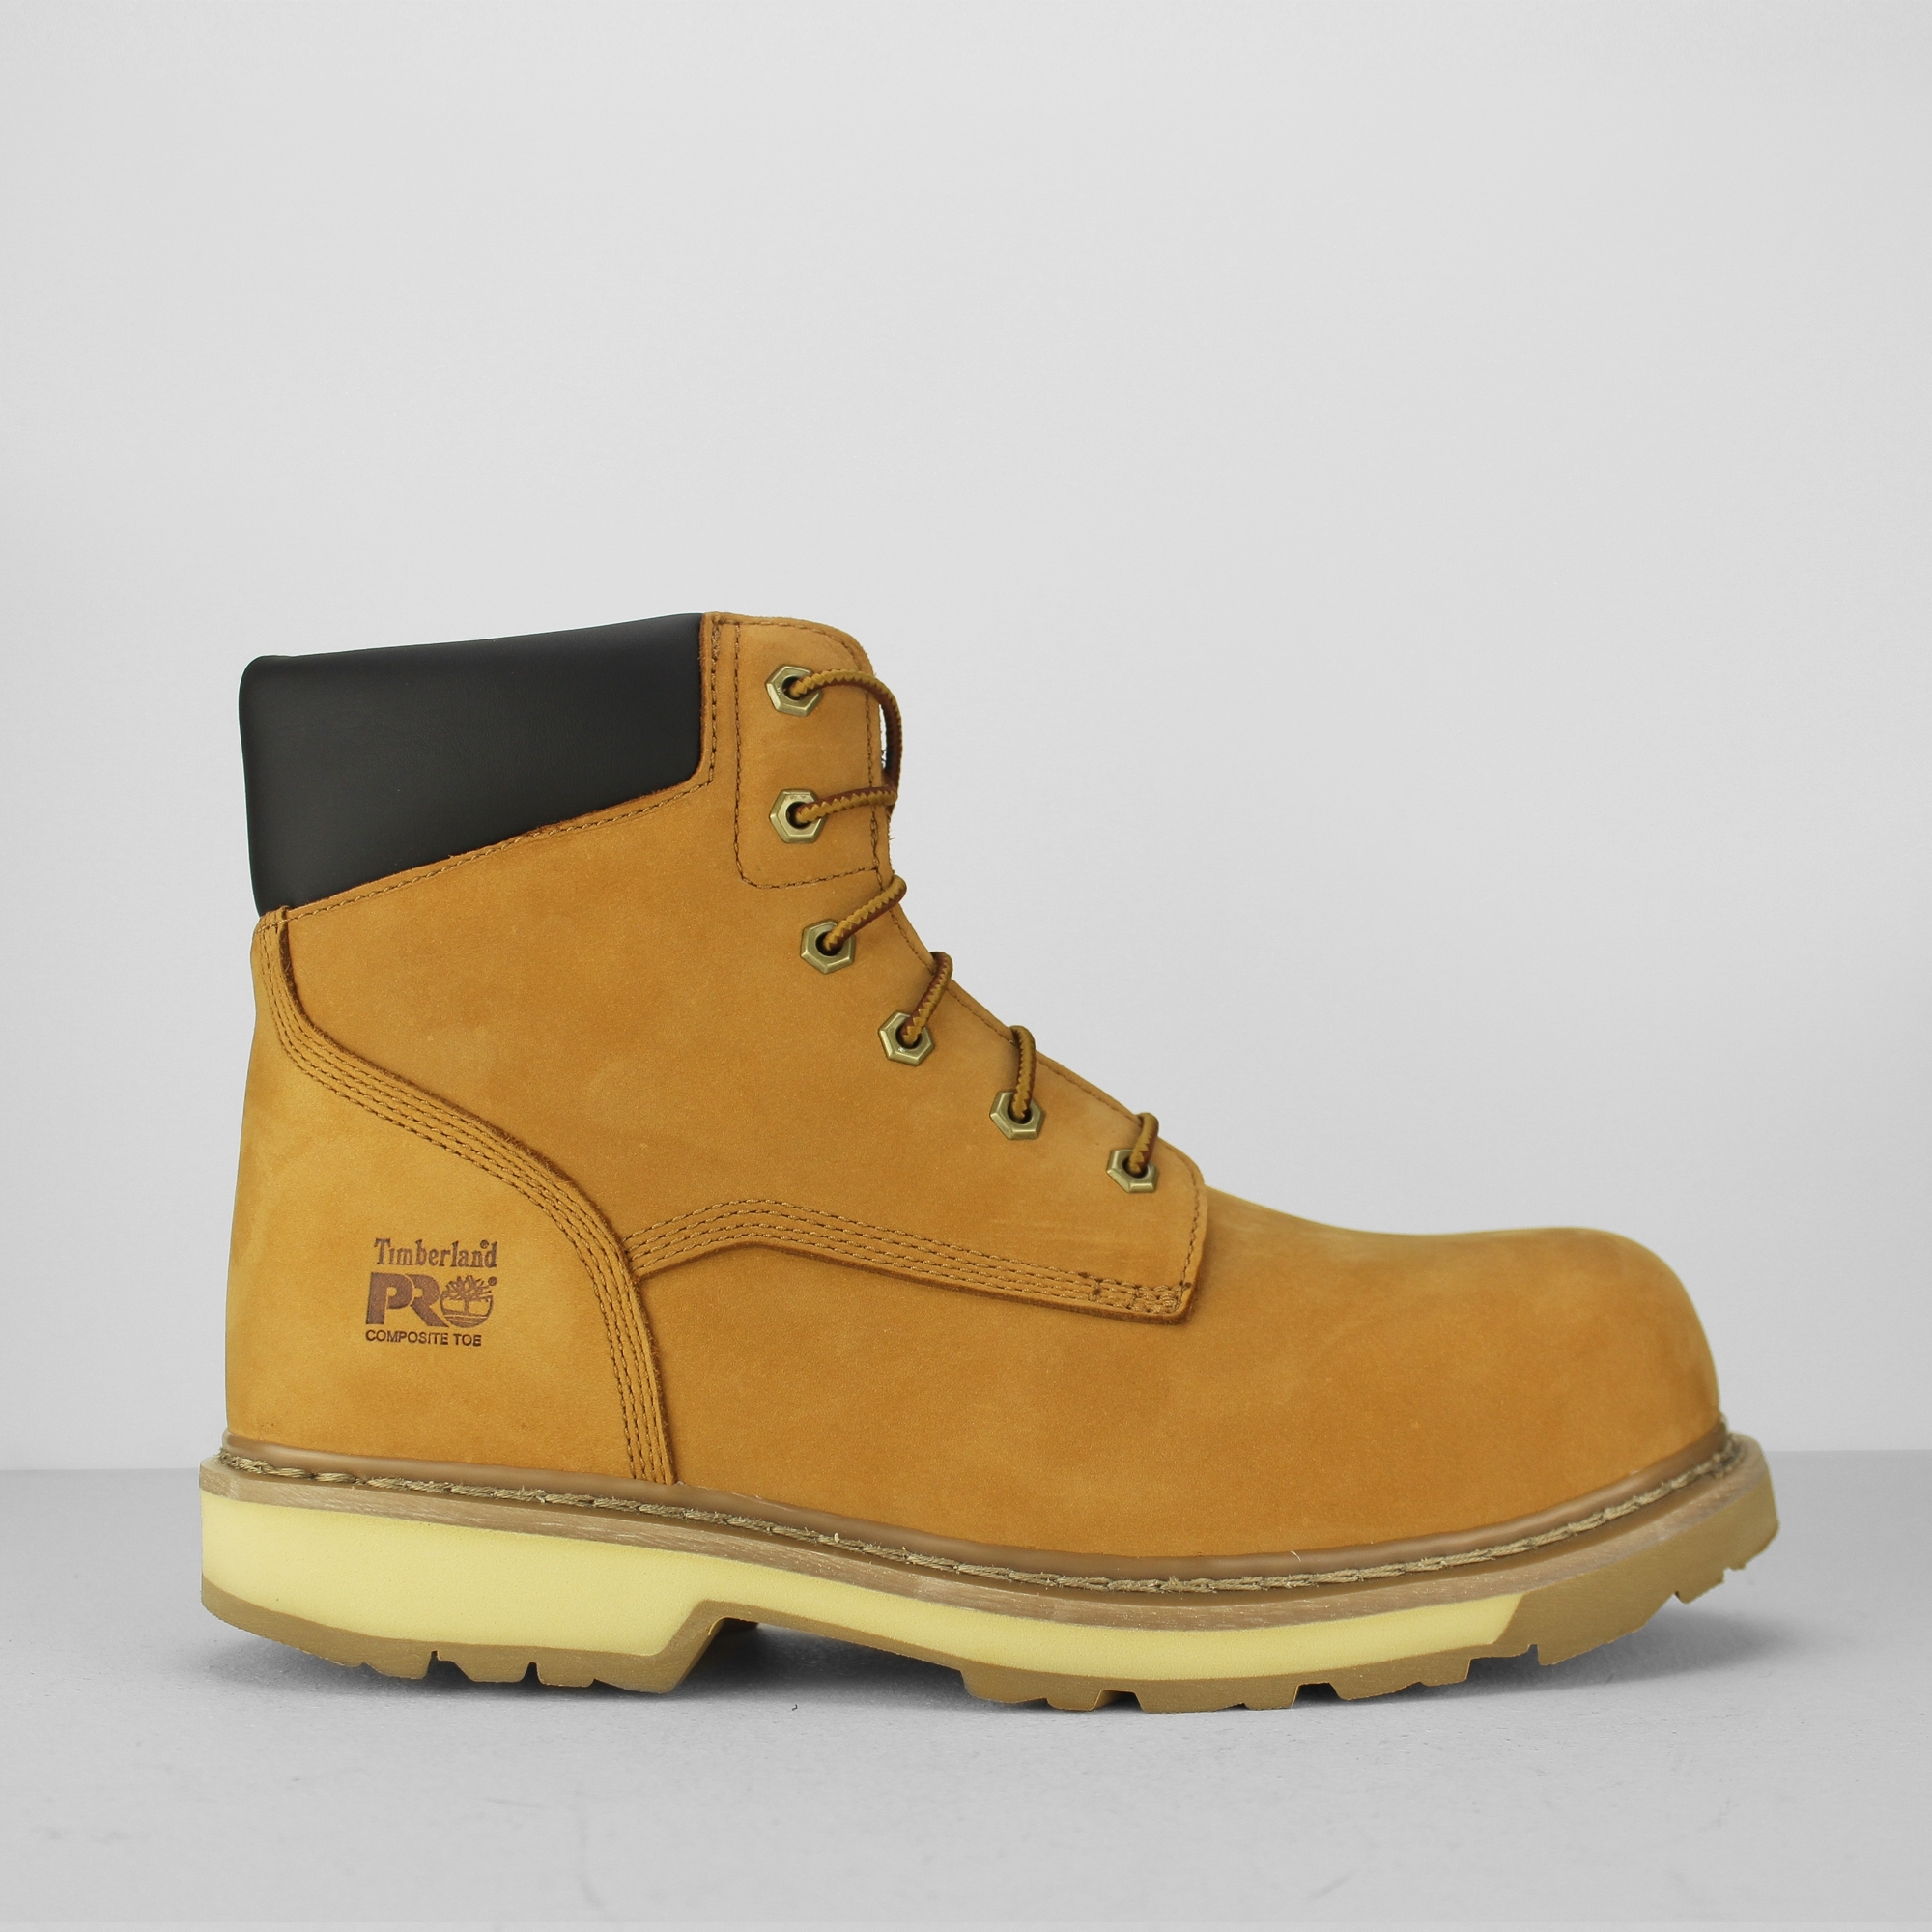 Timberland PRO Traditional Mens Welted